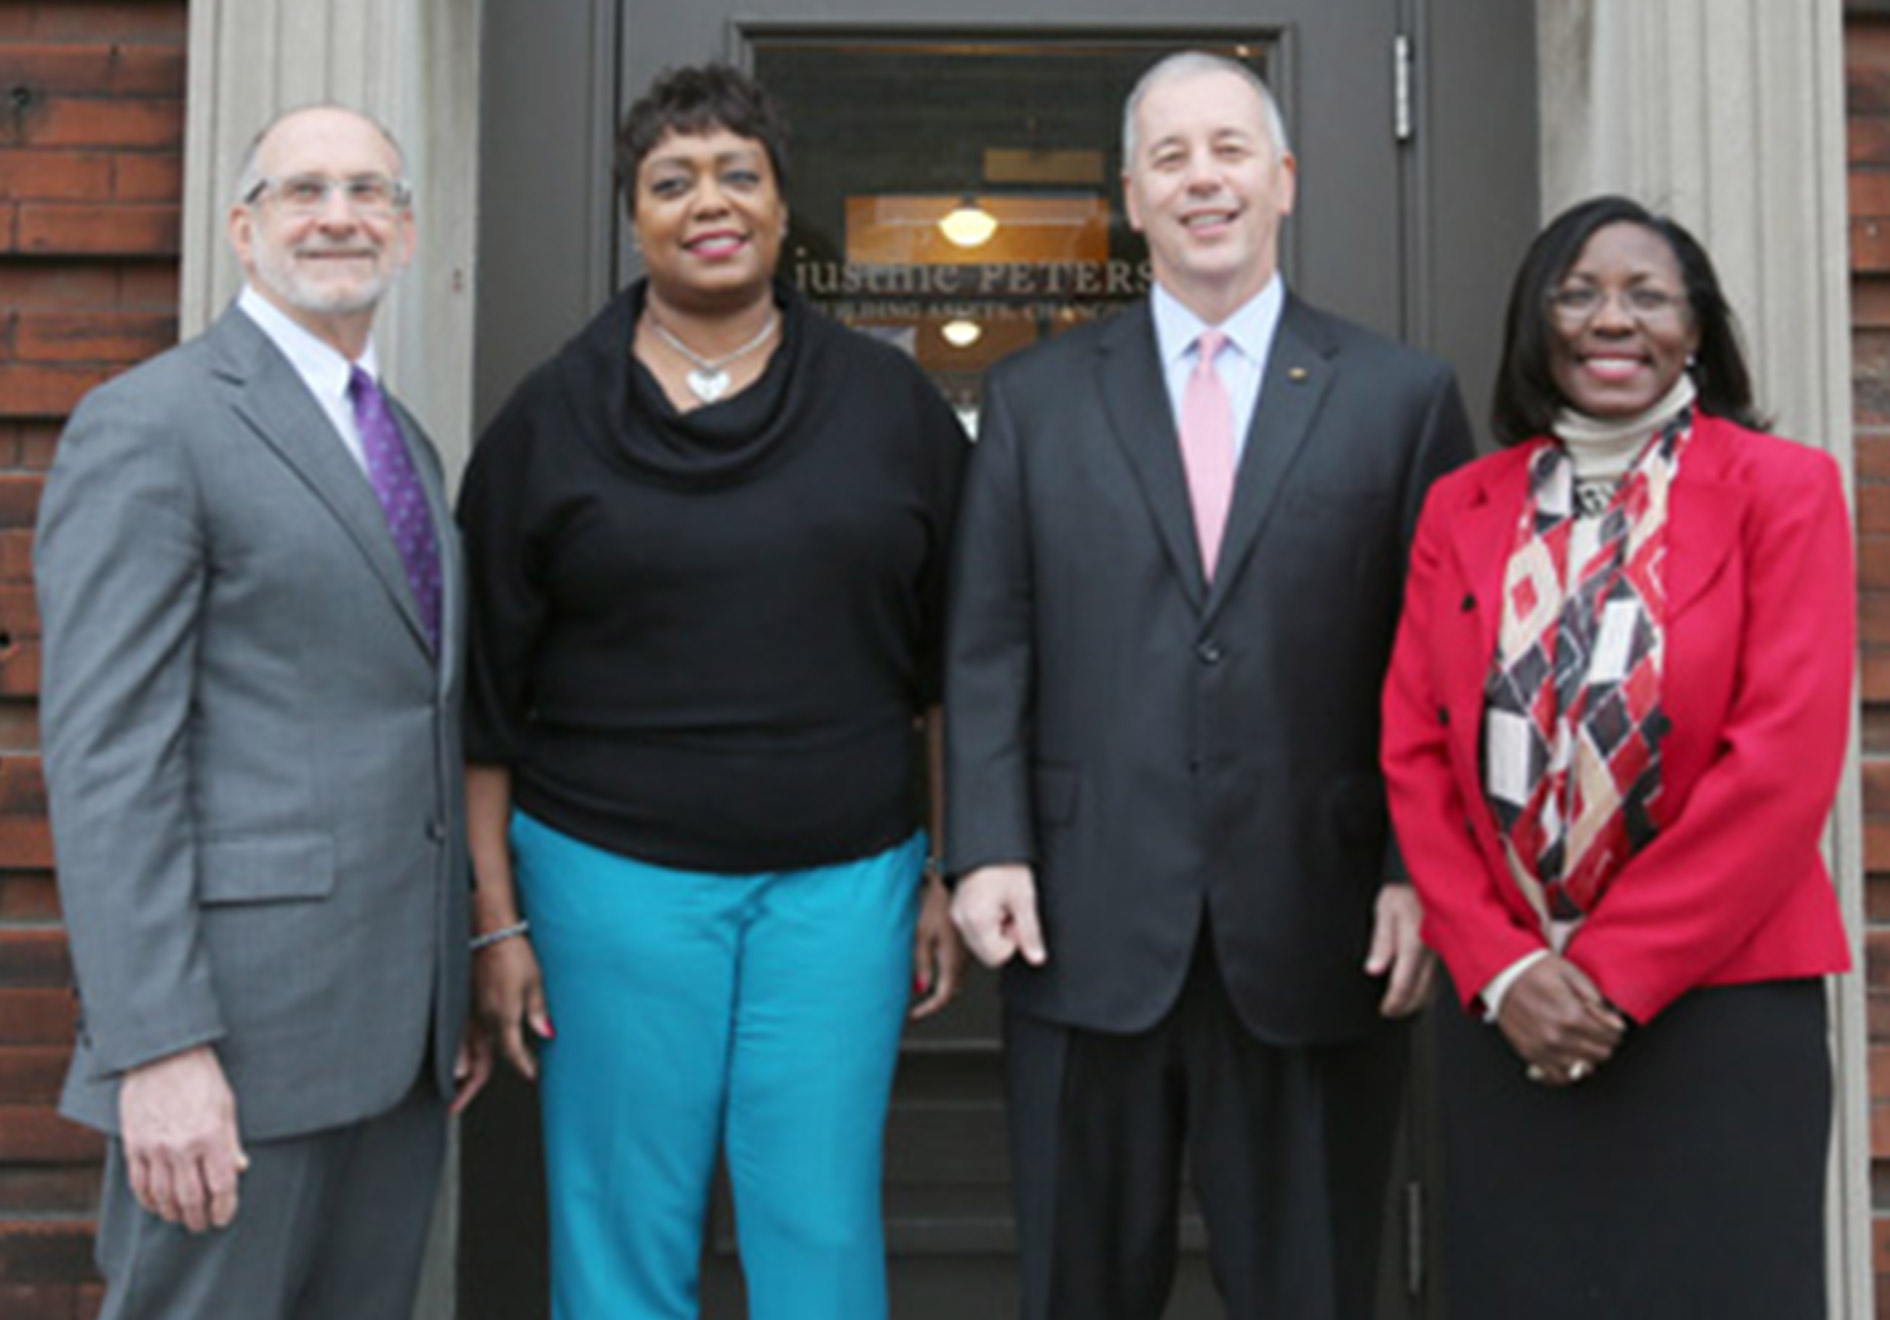 Left to Right: Rob Boyle, Irvetta Williams, Mike Hart, Dr. Tiffany Anderson.